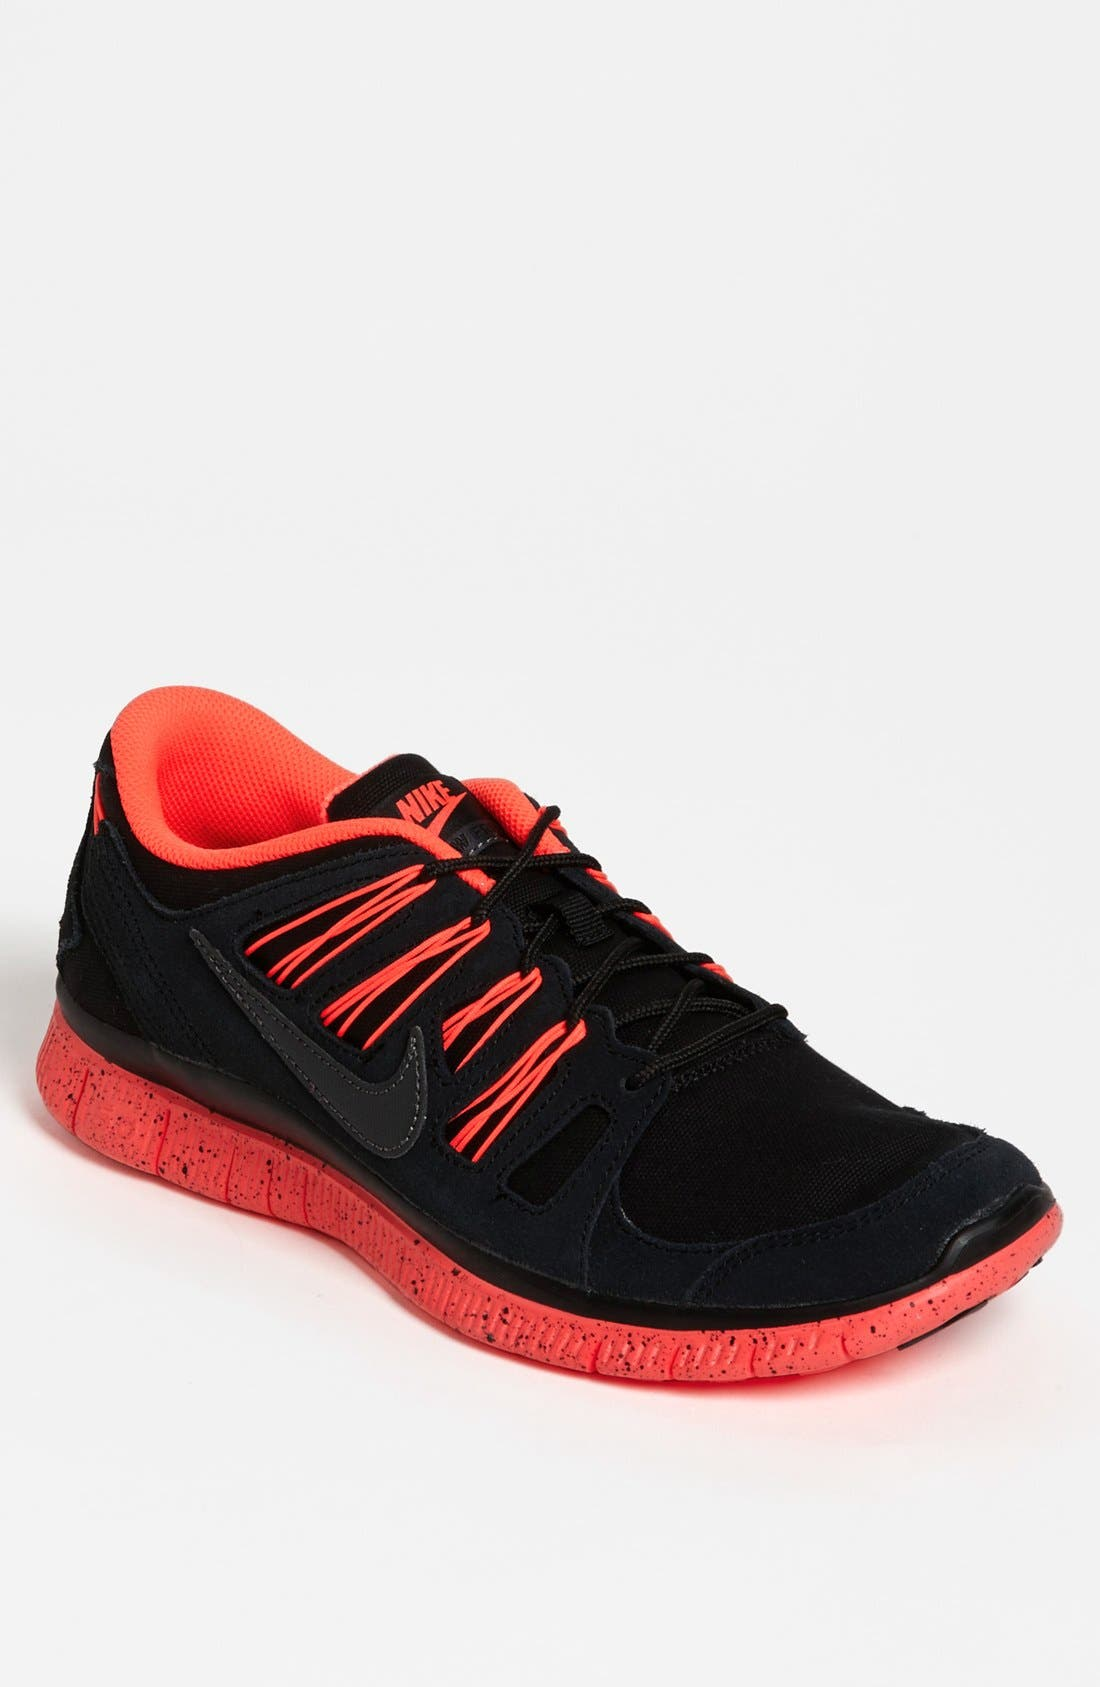 Main Image - Nike 'Free 5.0 EXT' Sneaker (Men)